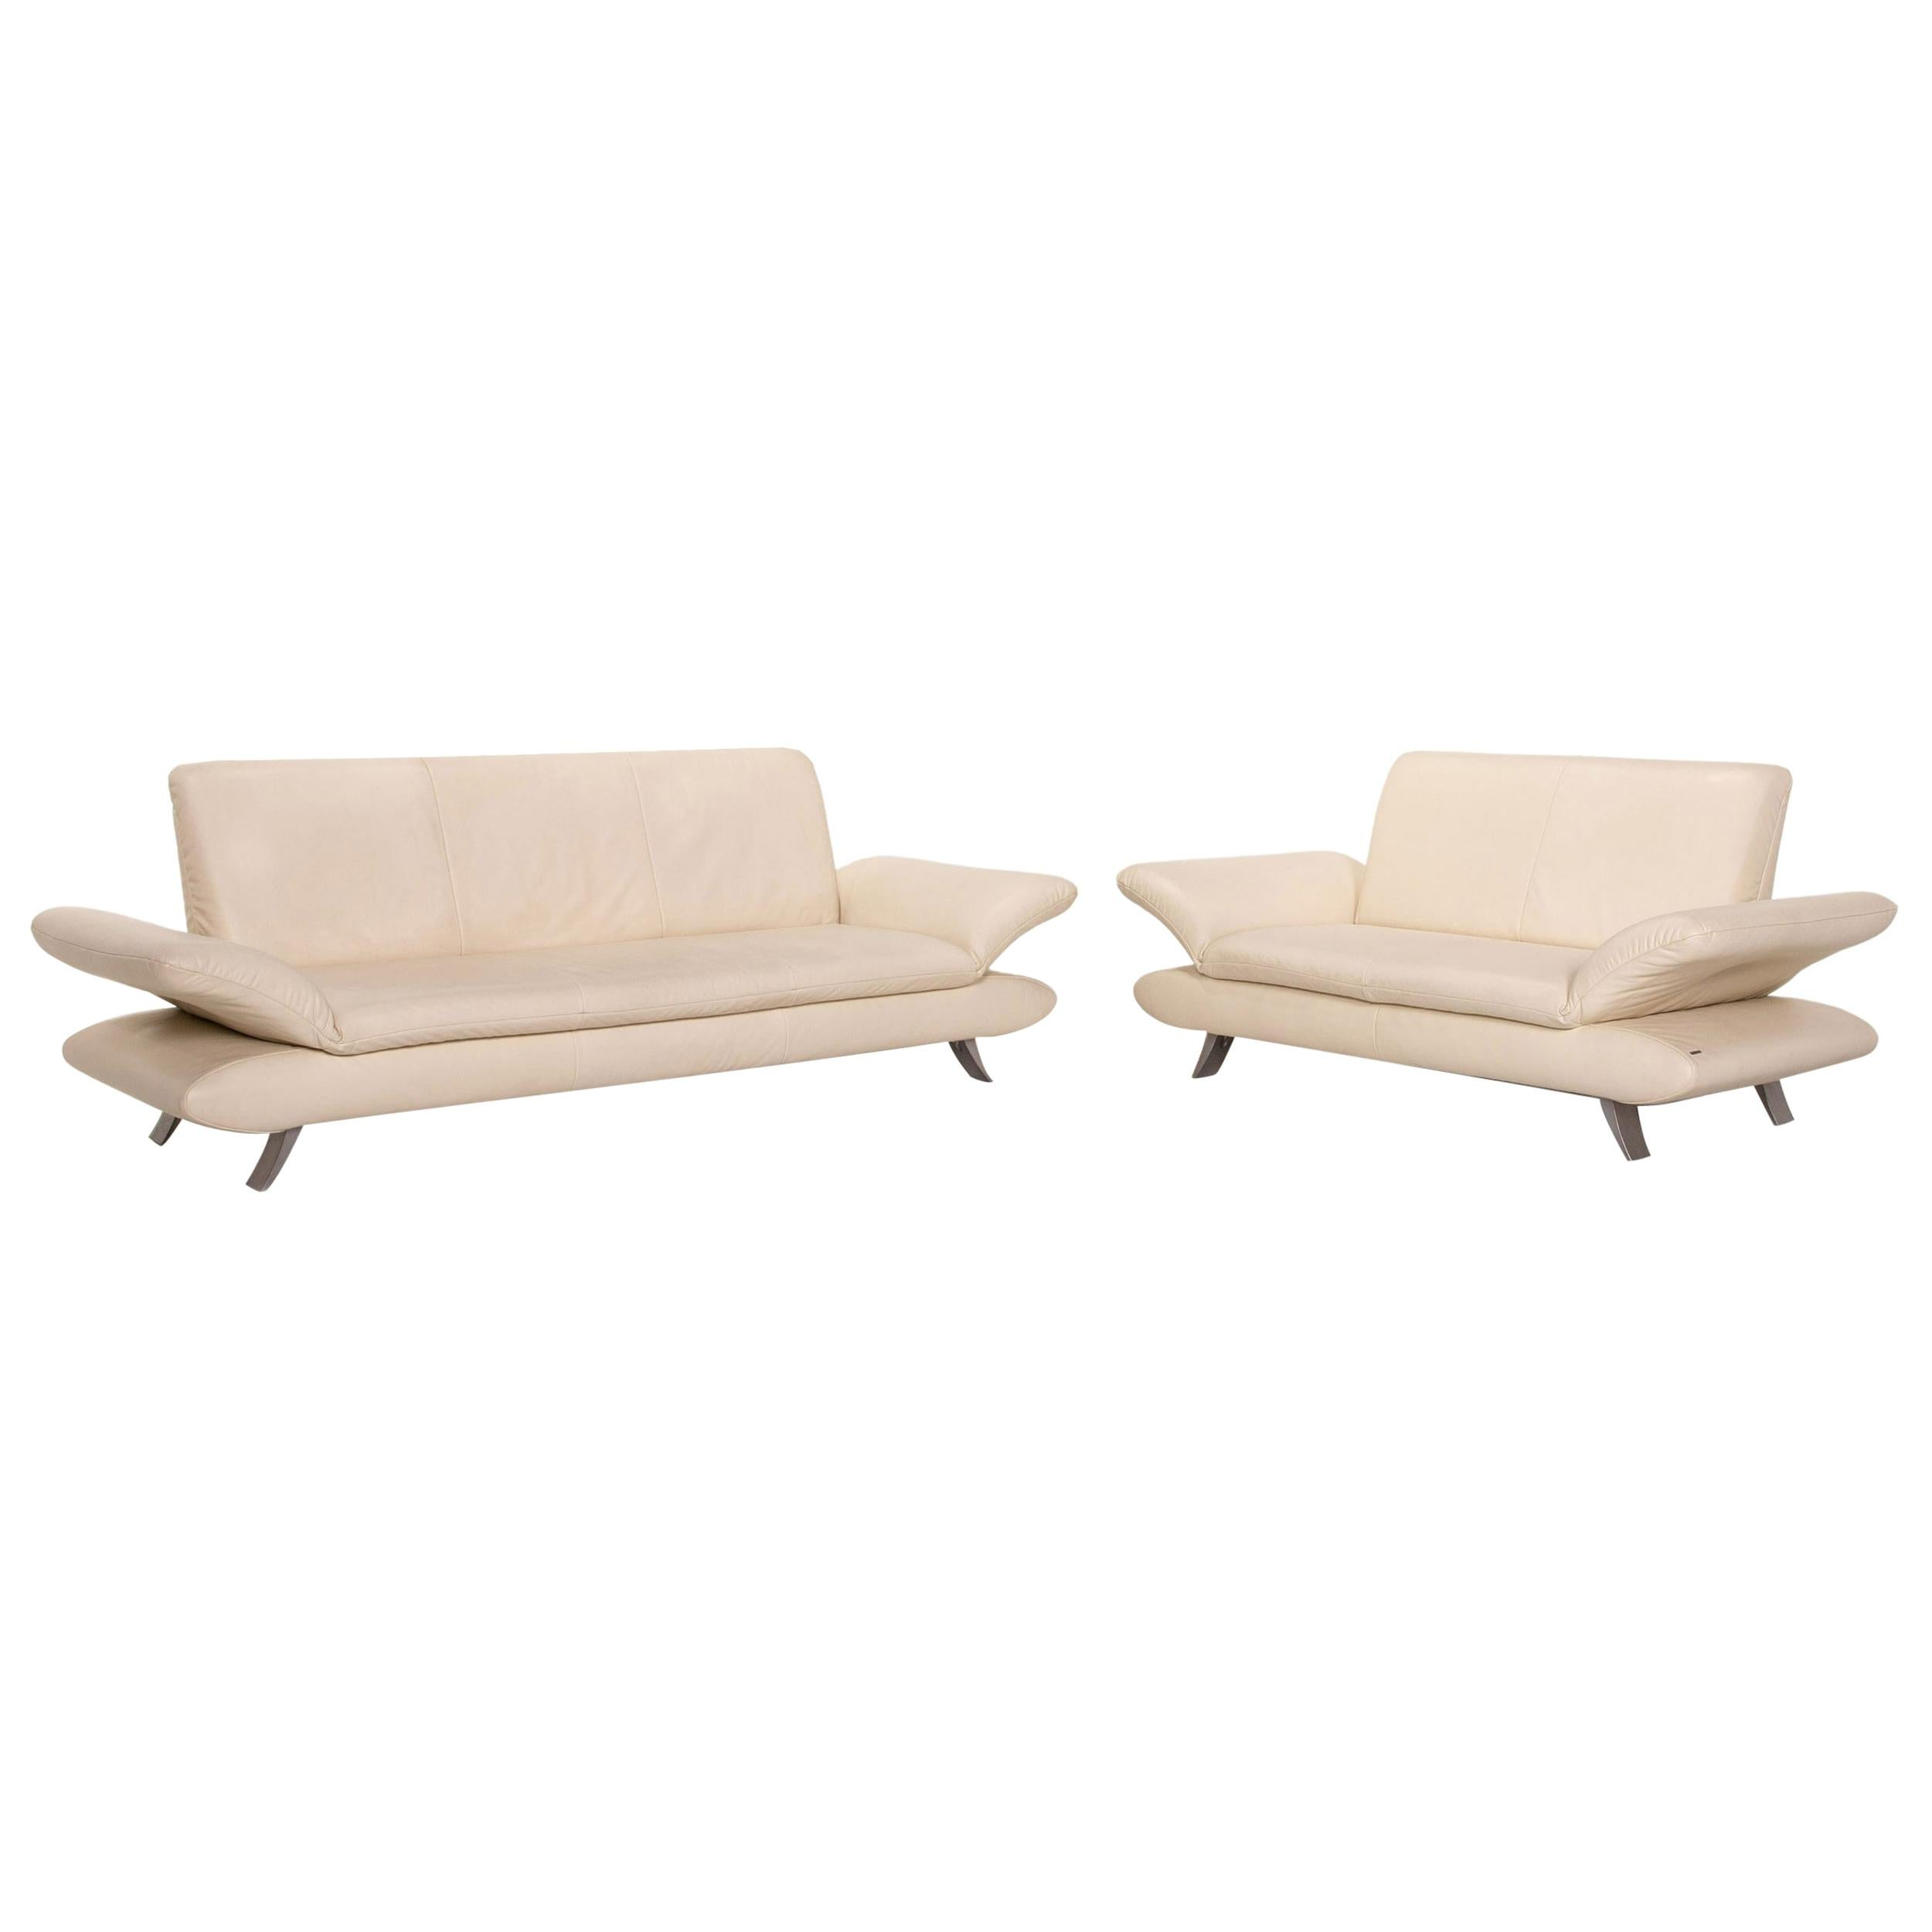 Koinor Rossini Leather Sofa Set Cream 1 Three-Seater 1 Two-Seater Function